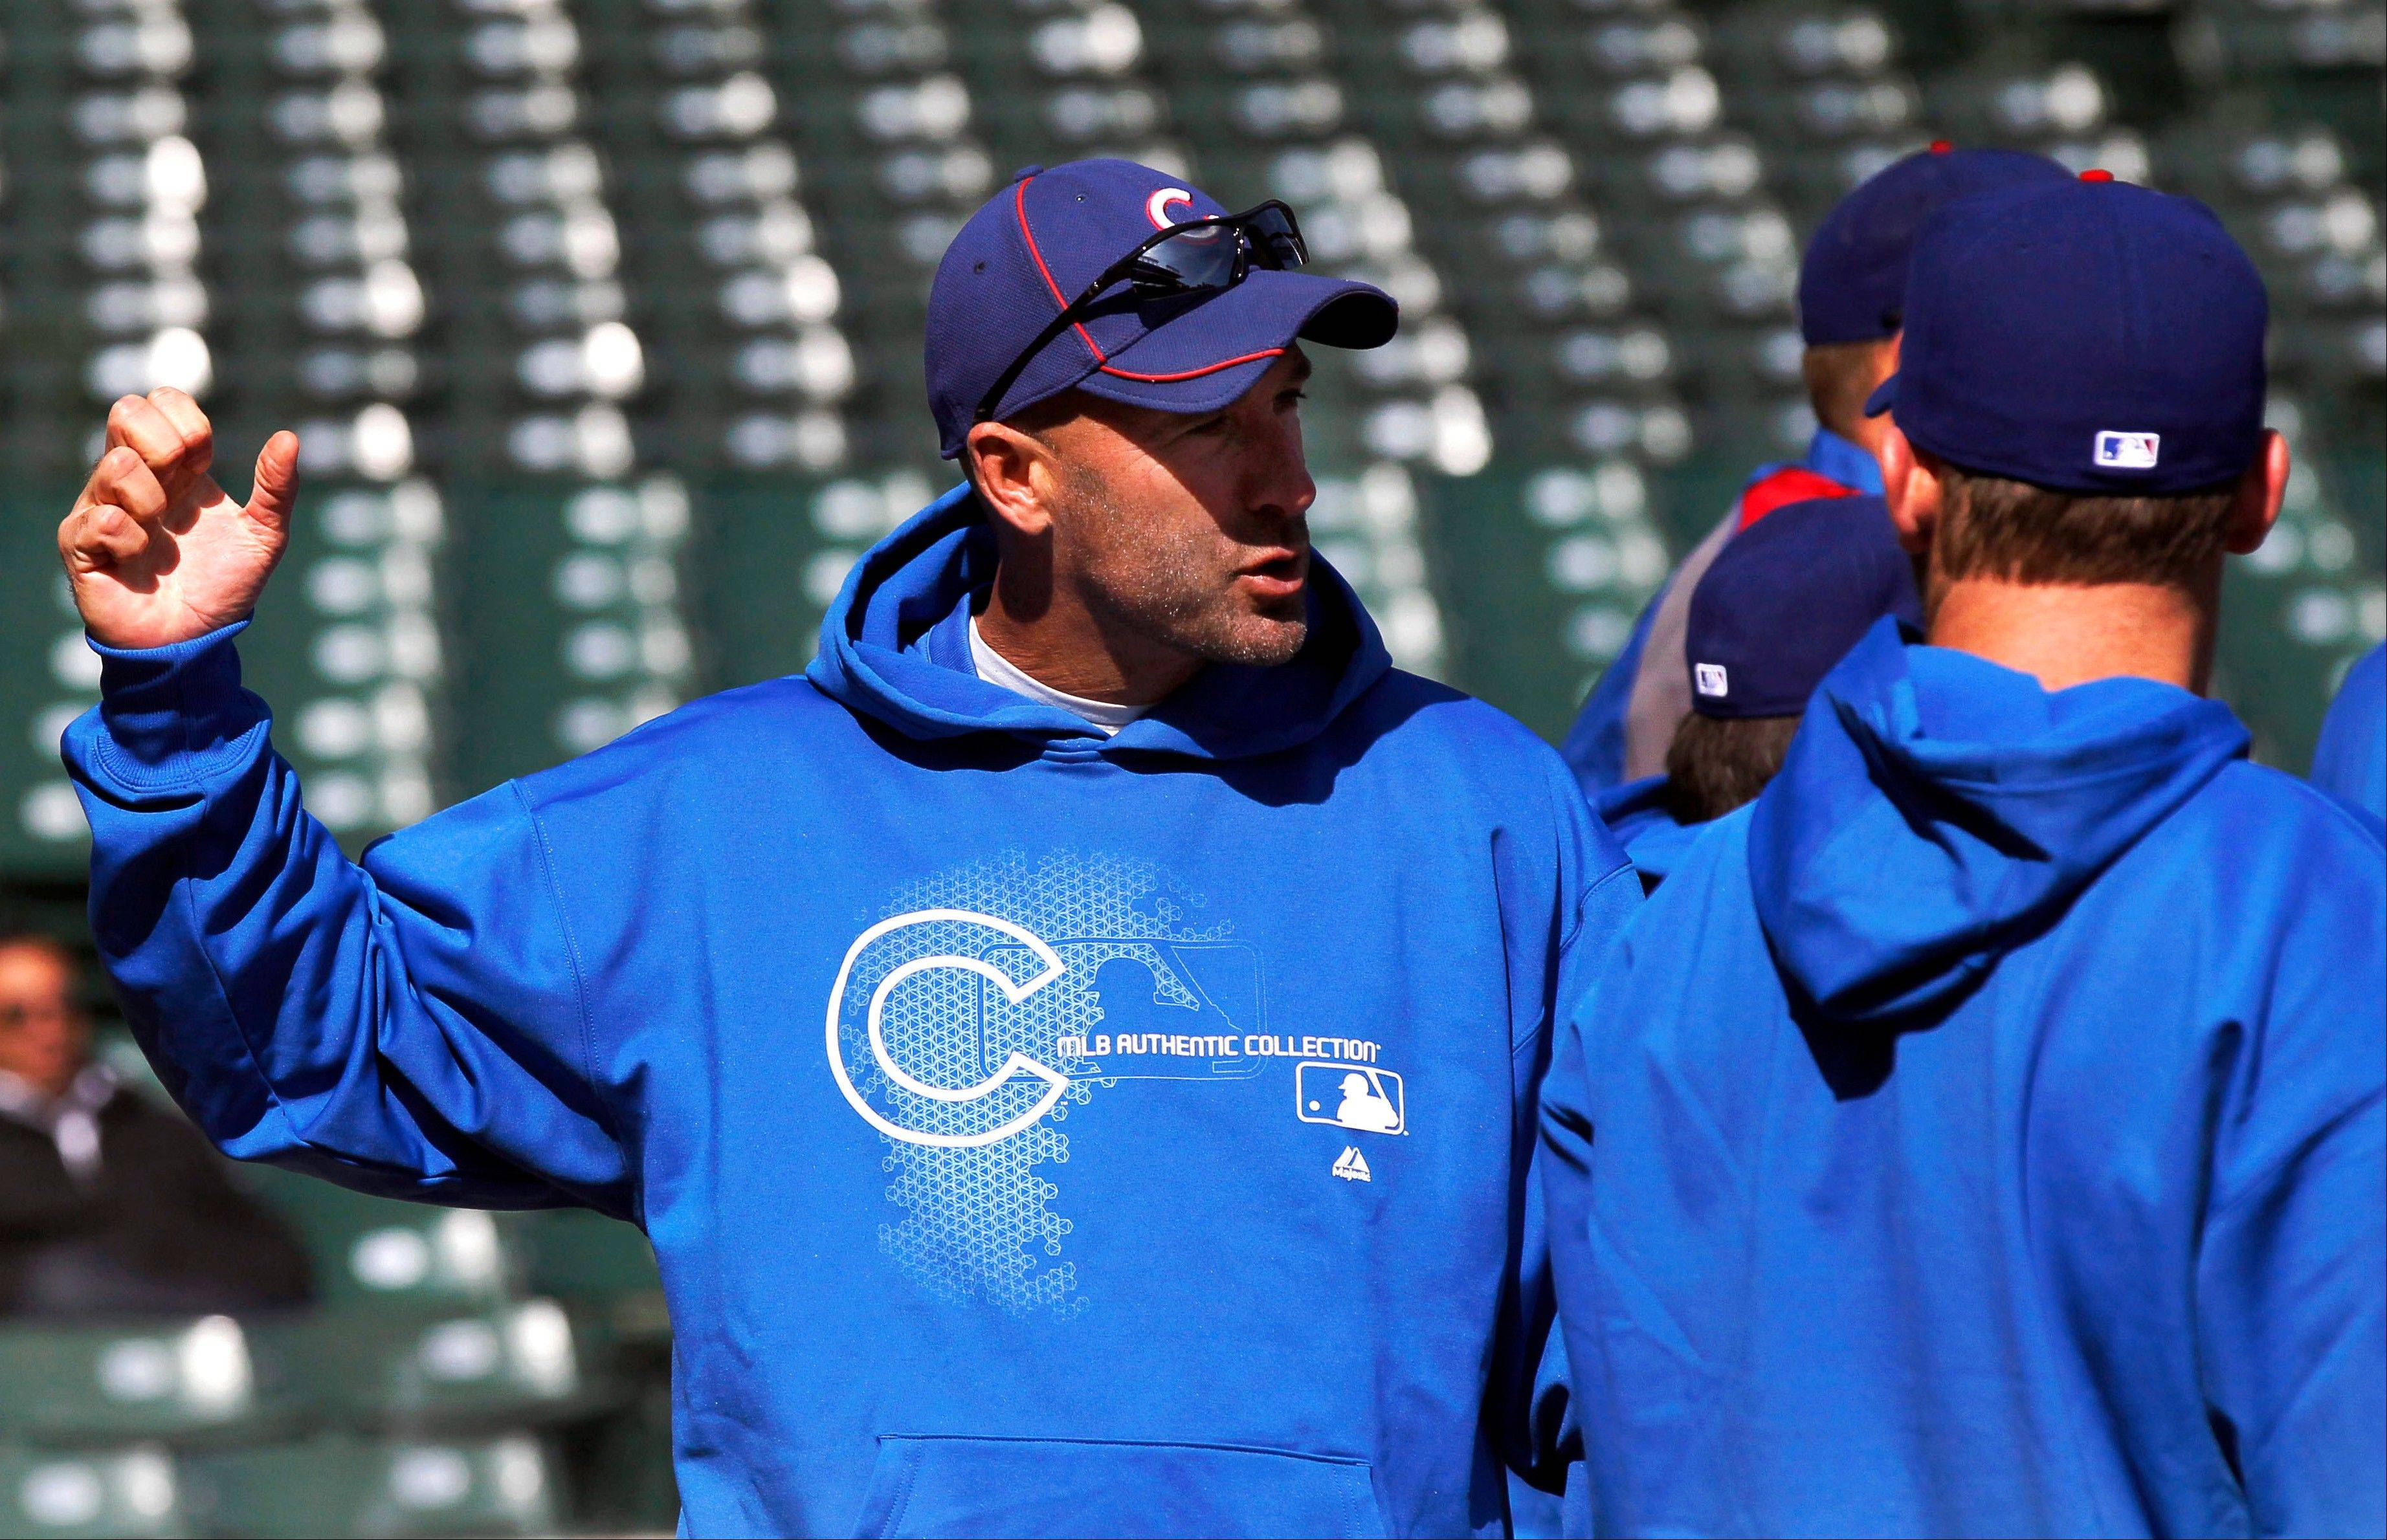 Chicago Cubs manager Dale Sveum, left, talks with starting pitcher Ryan Dempster before an opening day baseball game against the Washington Nationals, Thursday, April 5, 2012, in Chicago.